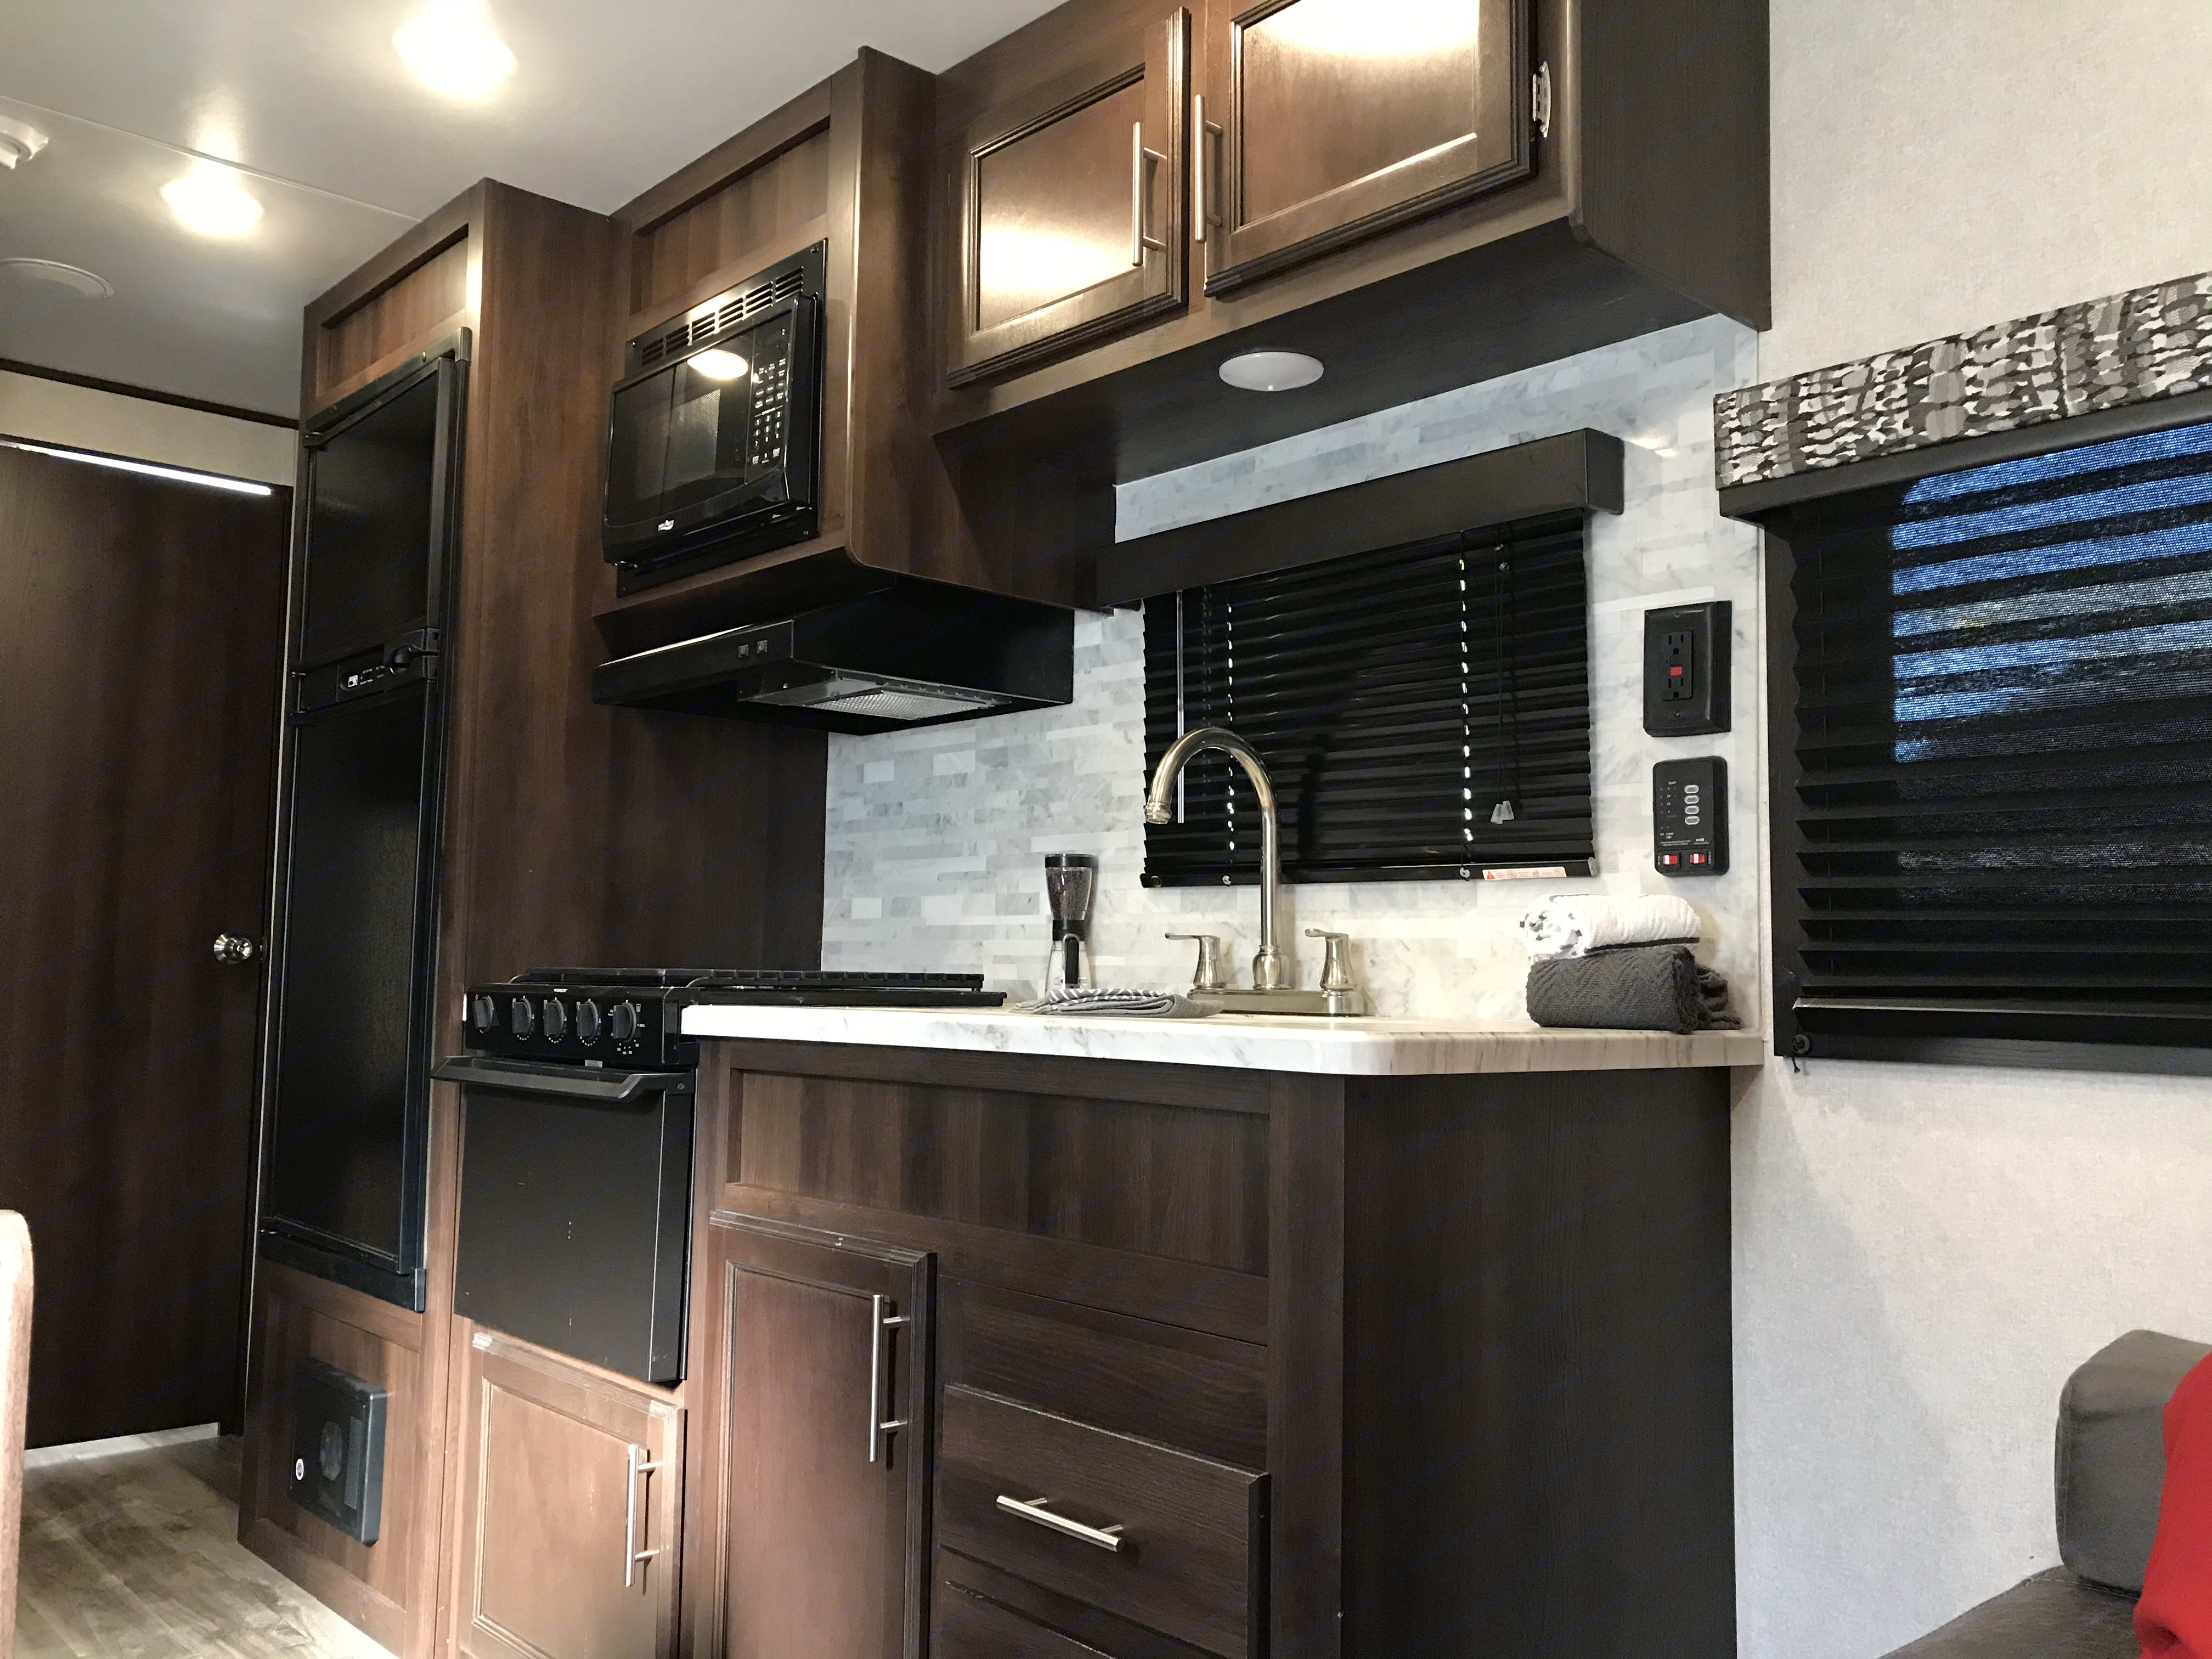 Another pic of the kitchen, expanded view with 6cubic foot refrigerator, 3 burner stone and microwave. Jayco Jay Flight 2020